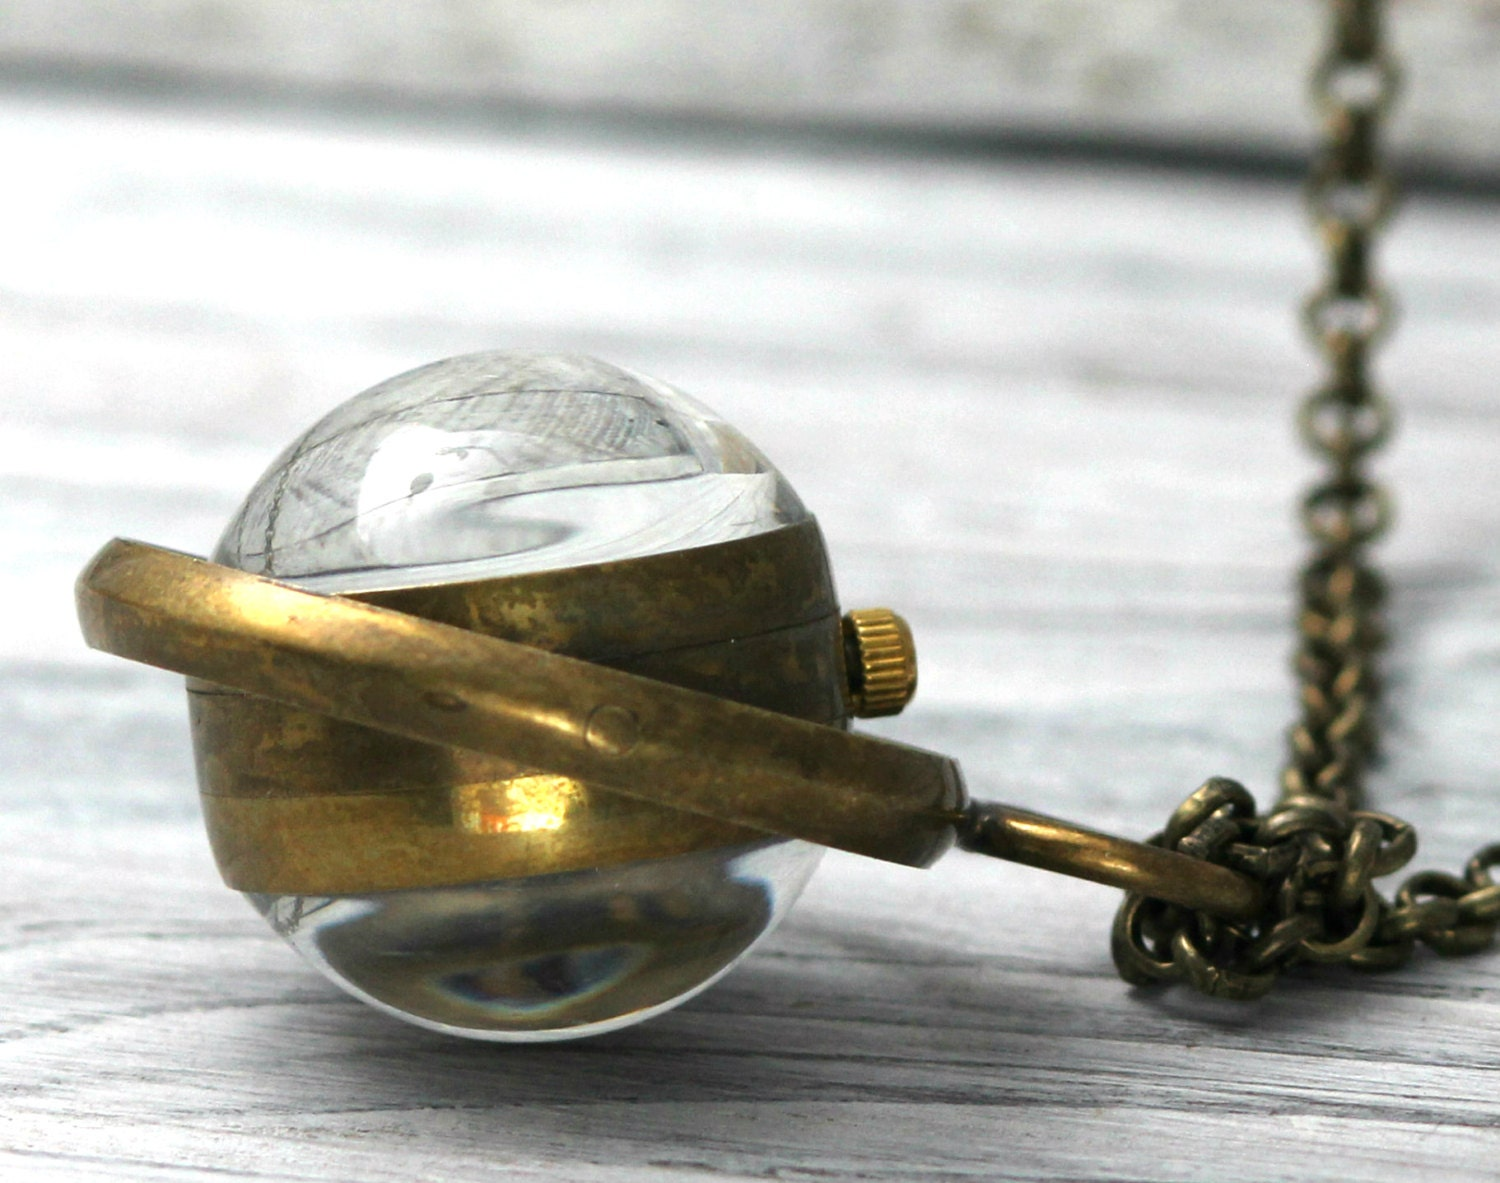 Glass Orb Domed Steampunk Mechenical Watch Necklace W Rustic Brass Frame Detail- Steampunk Stargate Inspired By Coughing Cow & Chicken - CoughingCowNChicken